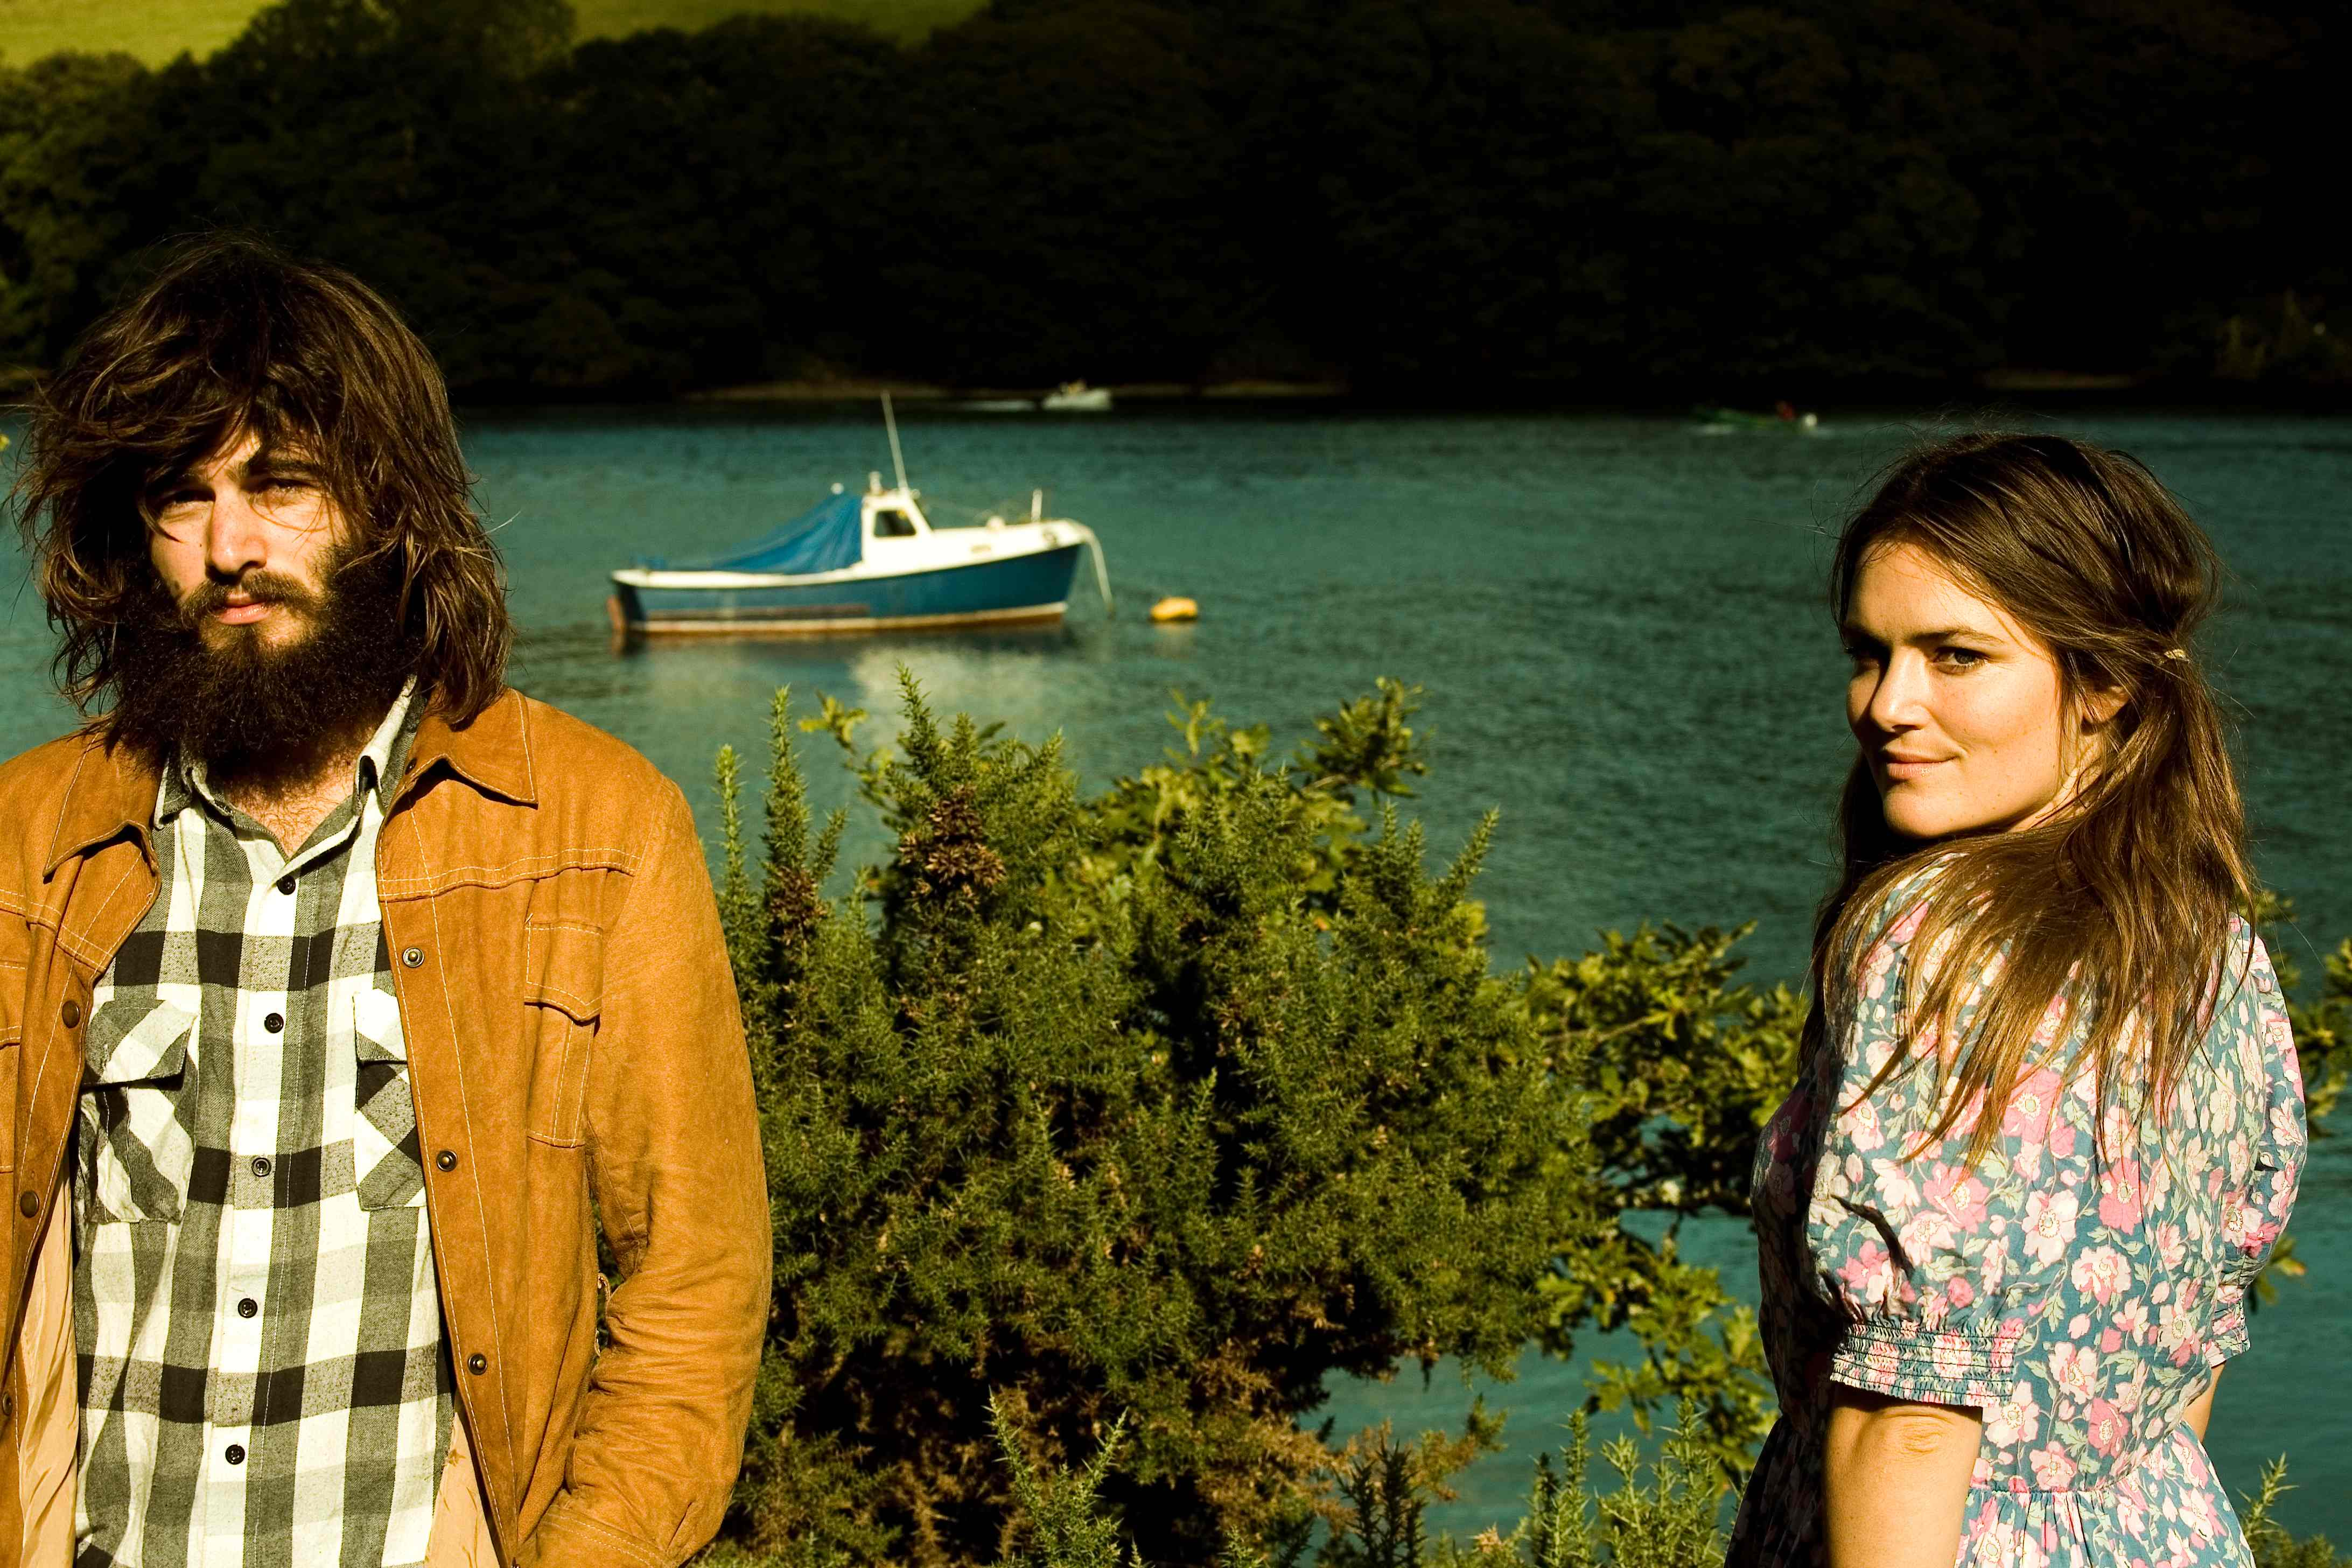 paper aeroplane angus and julia stone A book like this is the first full-length album by australian singer-songwriter duo angus & julia stone it was released in september 2007 in australia [1] and entered the australian charts at #6 [2] australian recording industry association and in the uk through flock music/ pias on 31 march 2008.